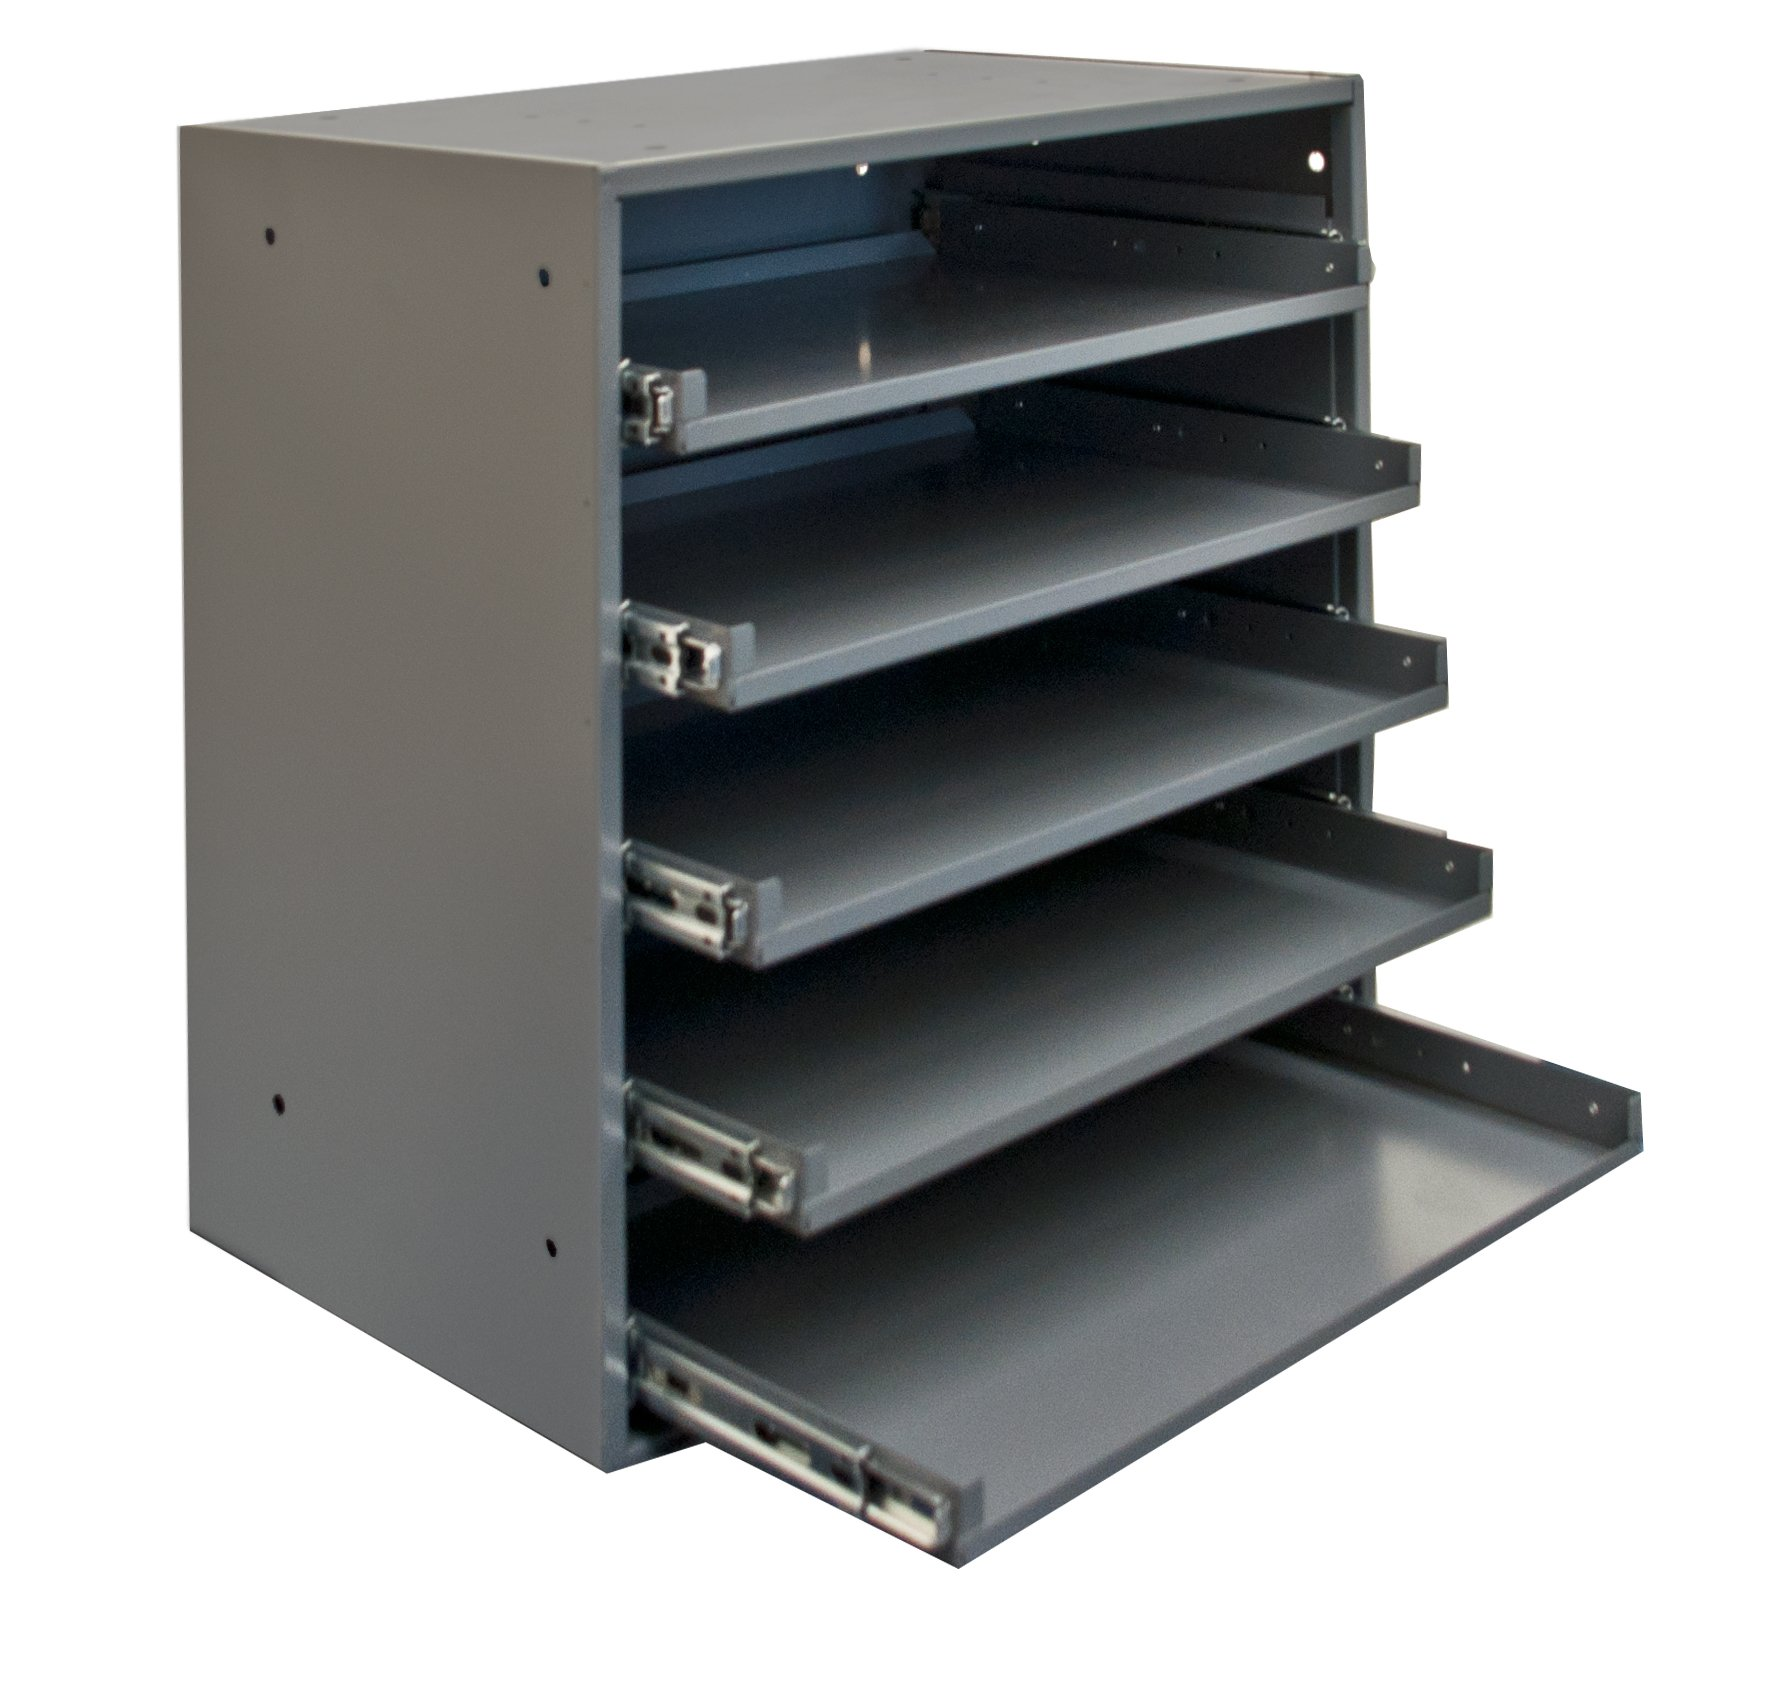 Durham 305B-95 Cold Rolled Steel Heavy Duty Triple Track Bearing Slide Rack FOR 5 Large Compartment Boxes, 375 lbs Capacity, 12-1/2'' Length x 20-1/2'' Width x 21'' Height, Gray Powder Coated Finish. Slide Rack does not come with compartment boxes which are